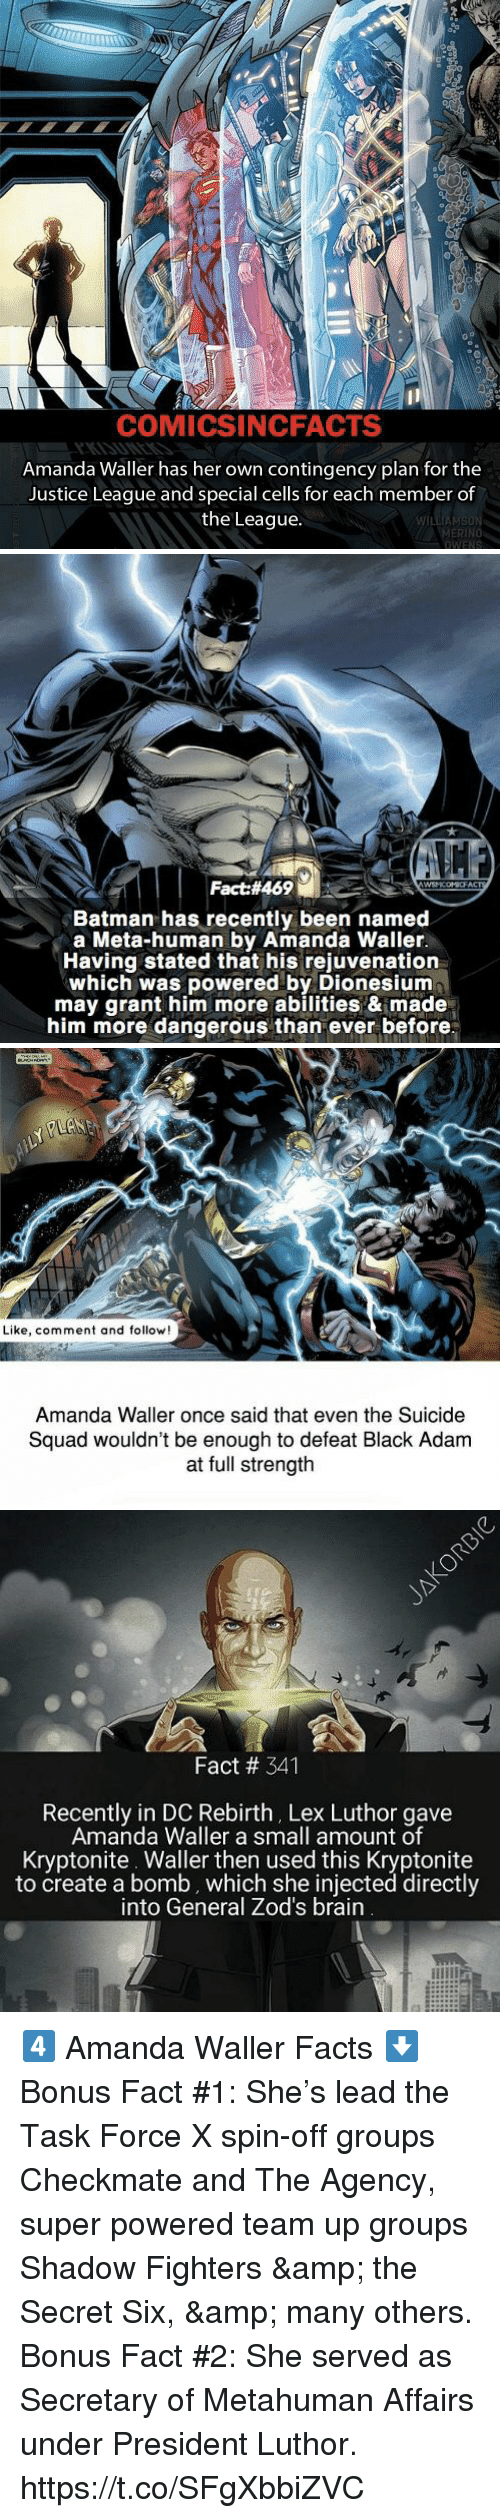 Batman, Facts, and Memes: COMICSINCFACTS  Amanda Waller has her own contingency plan for the  Justice League and special cells for each member of  the League  MERIN   Fact#469  Batman has recently been named  a Meta-human by Amanda Waller  Having stated that his rejuvenation  which was powered by Dionesiunm  may grant him more abilities & made  him more dangerous than ever before   -心  Like, comment and follow!  Amanda Waller once said that even the Suicide  Squad wouldn't be enough to defeat Black Adam  at full strength   Fact # 341  Recently in DC Rebirth, Lex Luthor gave  Amanda Waller a small amount of  Kryptonite. Waller then used this Kryptonite  to create a bomb, which she injected directly  into General Zod's brain 4️⃣ Amanda Waller Facts ⬇️  Bonus Fact #1: She's lead the Task Force X spin-off groups Checkmate and The Agency, super powered team up groups Shadow Fighters & the Secret Six, & many others.  Bonus Fact #2: She served as Secretary of Metahuman Affairs under President Luthor. https://t.co/SFgXbbiZVC